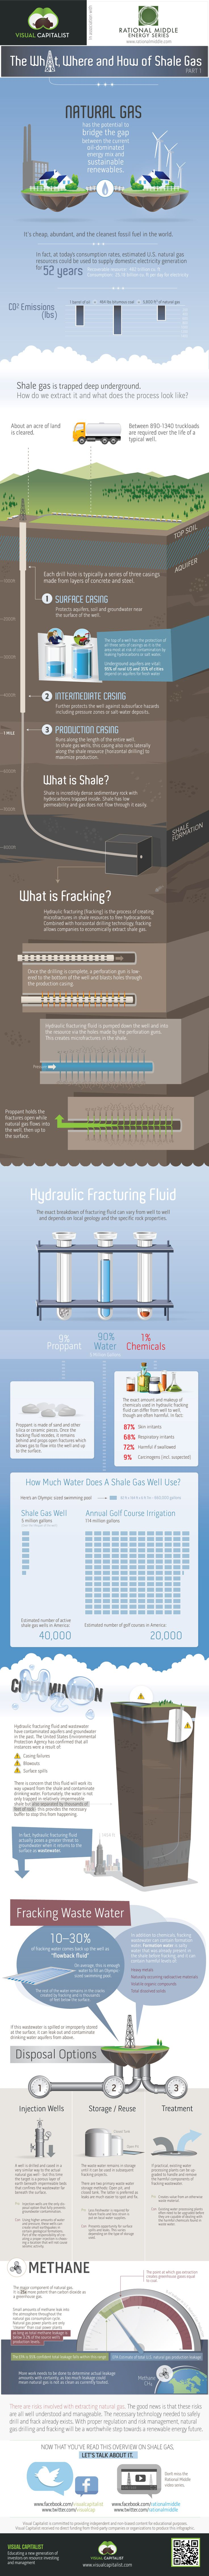 Great infographic on shale and hydraulic fracturing